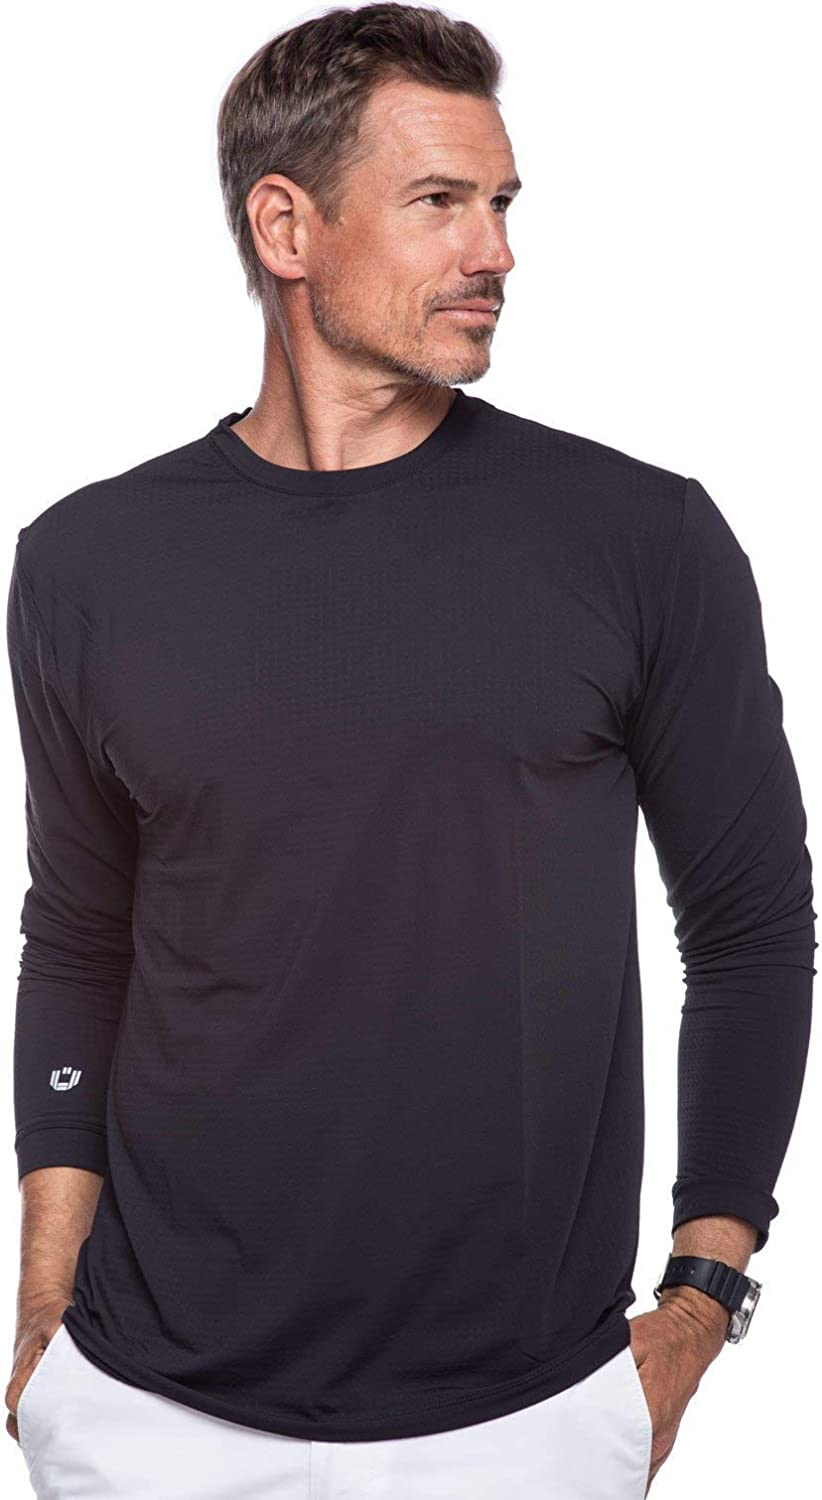 Cooling Long Sleeve T-Shirt IBKUL Mens Sun Protective UPF 50 Modern Fit 93199